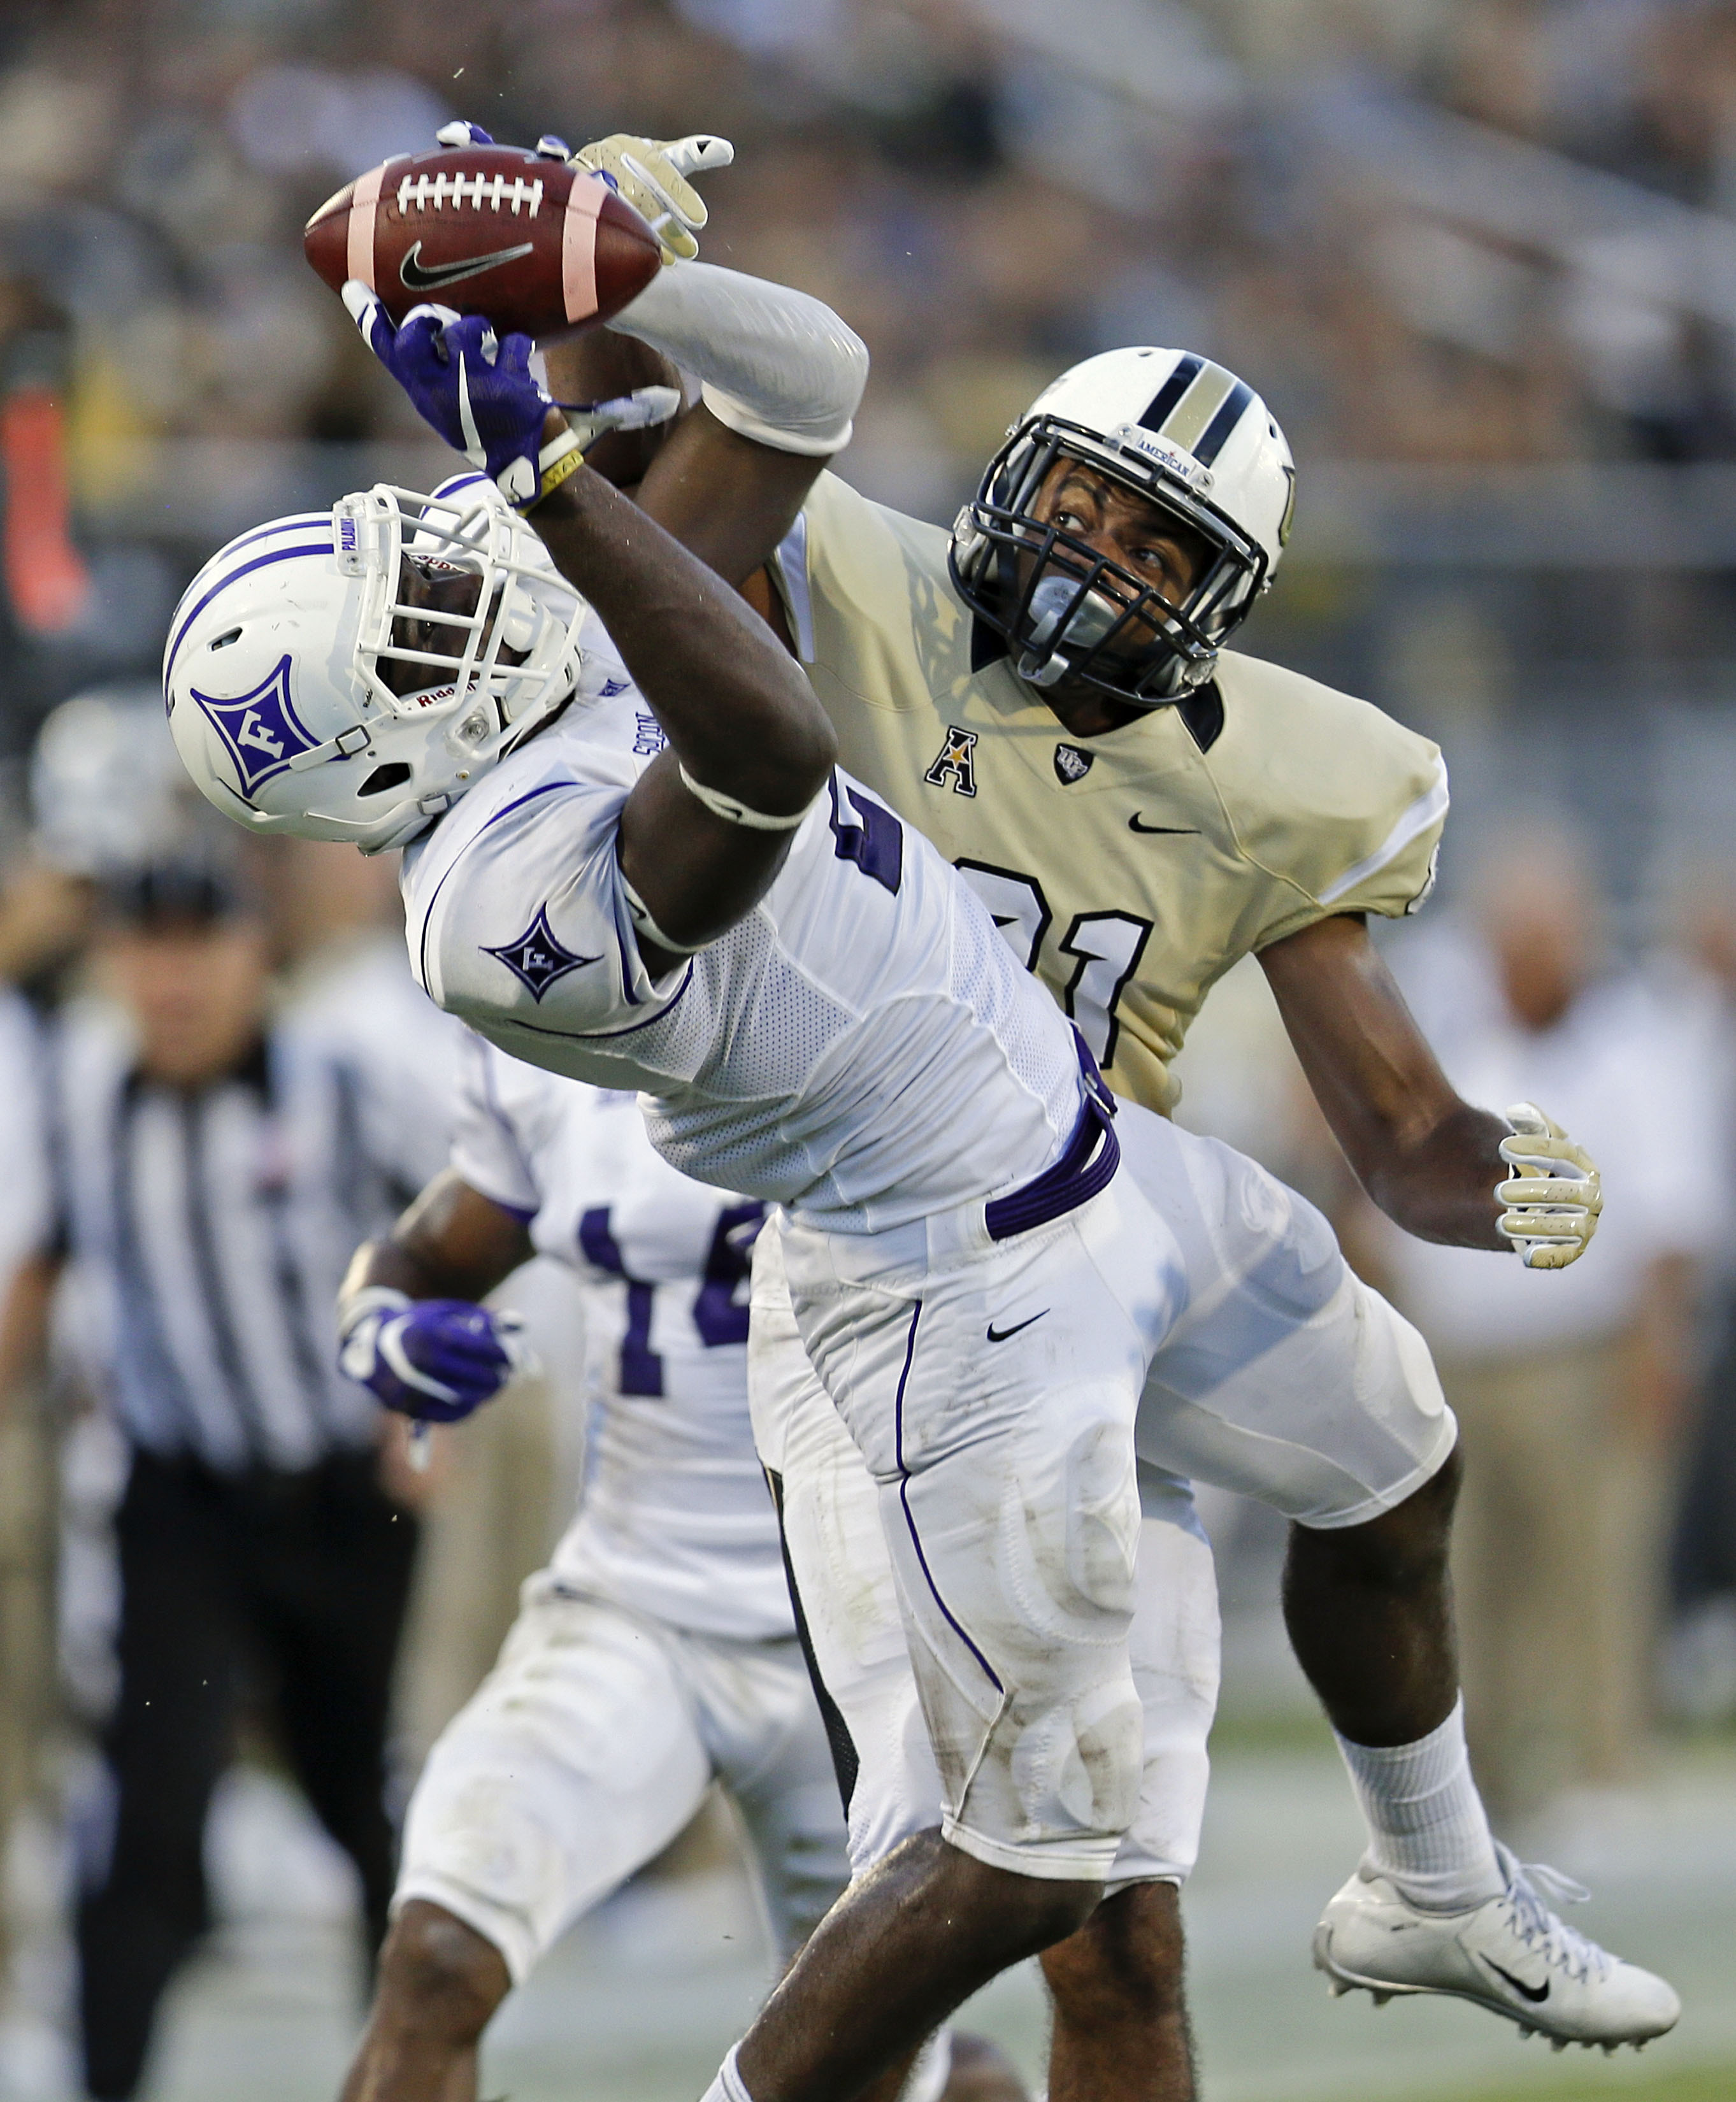 Furman safety Trey Robinson, left, intercepts a pass intended for Central Florida wide receiver Chris Johnson, right, during the first half an NCAA college football game, Saturday, Sept. 19, 2015, in Orlando, Fla. (AP Photo/John Raoux)